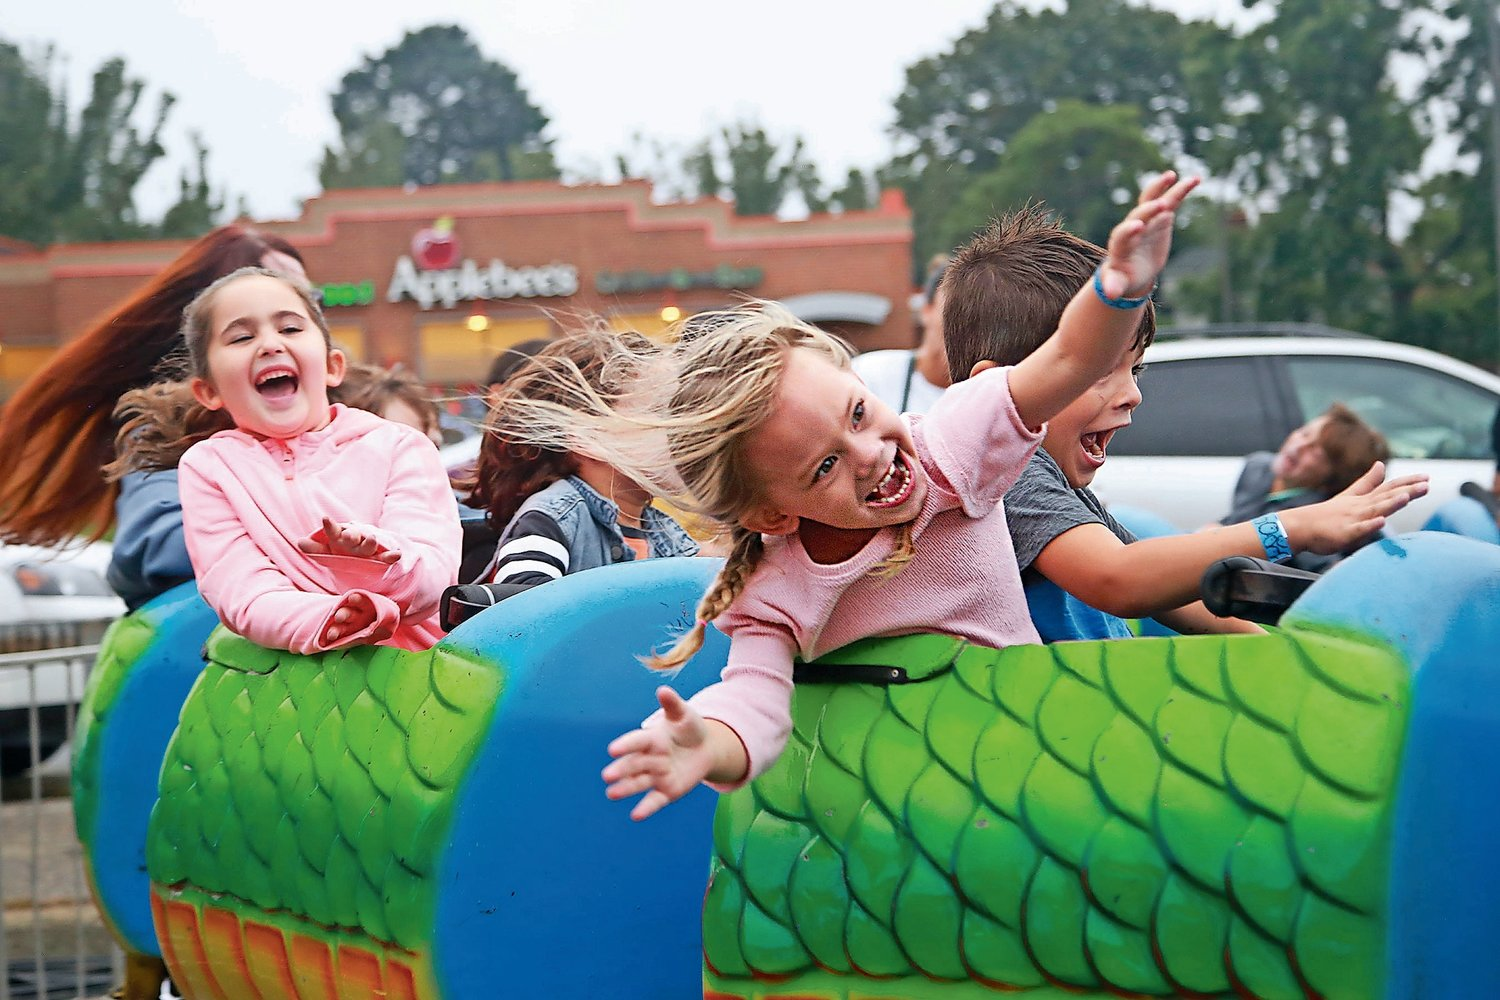 In 2019, hundreds of families enjoyed a sunny weekend at the Bellmore Street Festival, hosted by the Chamber of Commerce of the Bellmores, including 3-year old Jonny Russell in the Dragon Coaster. After its cancellation in 2020 because of the pandemic, the event will be back in September.